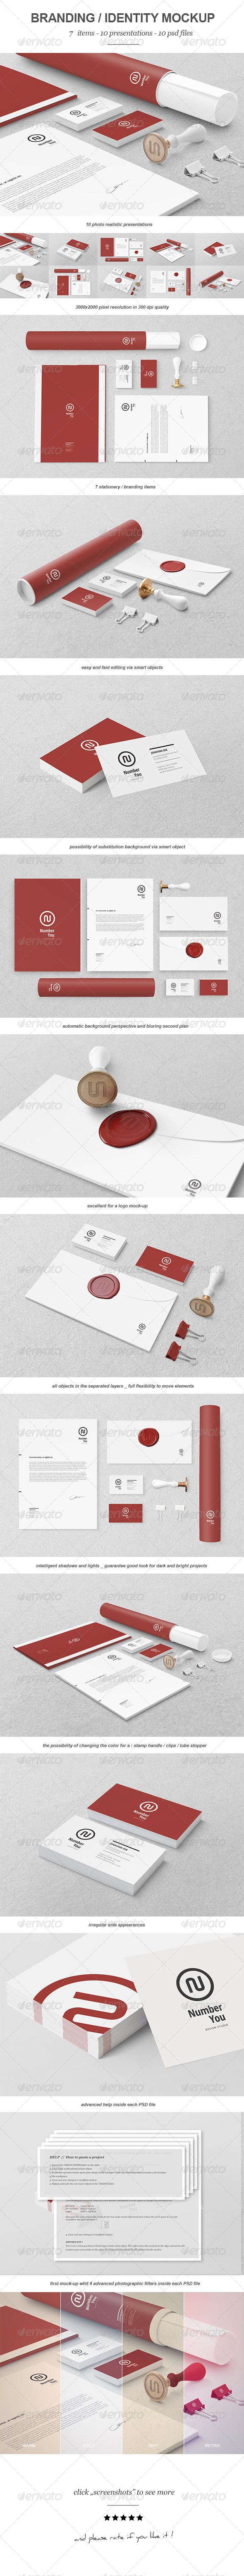 Branding / Identity Mock-up III - Print Product Mock-Ups